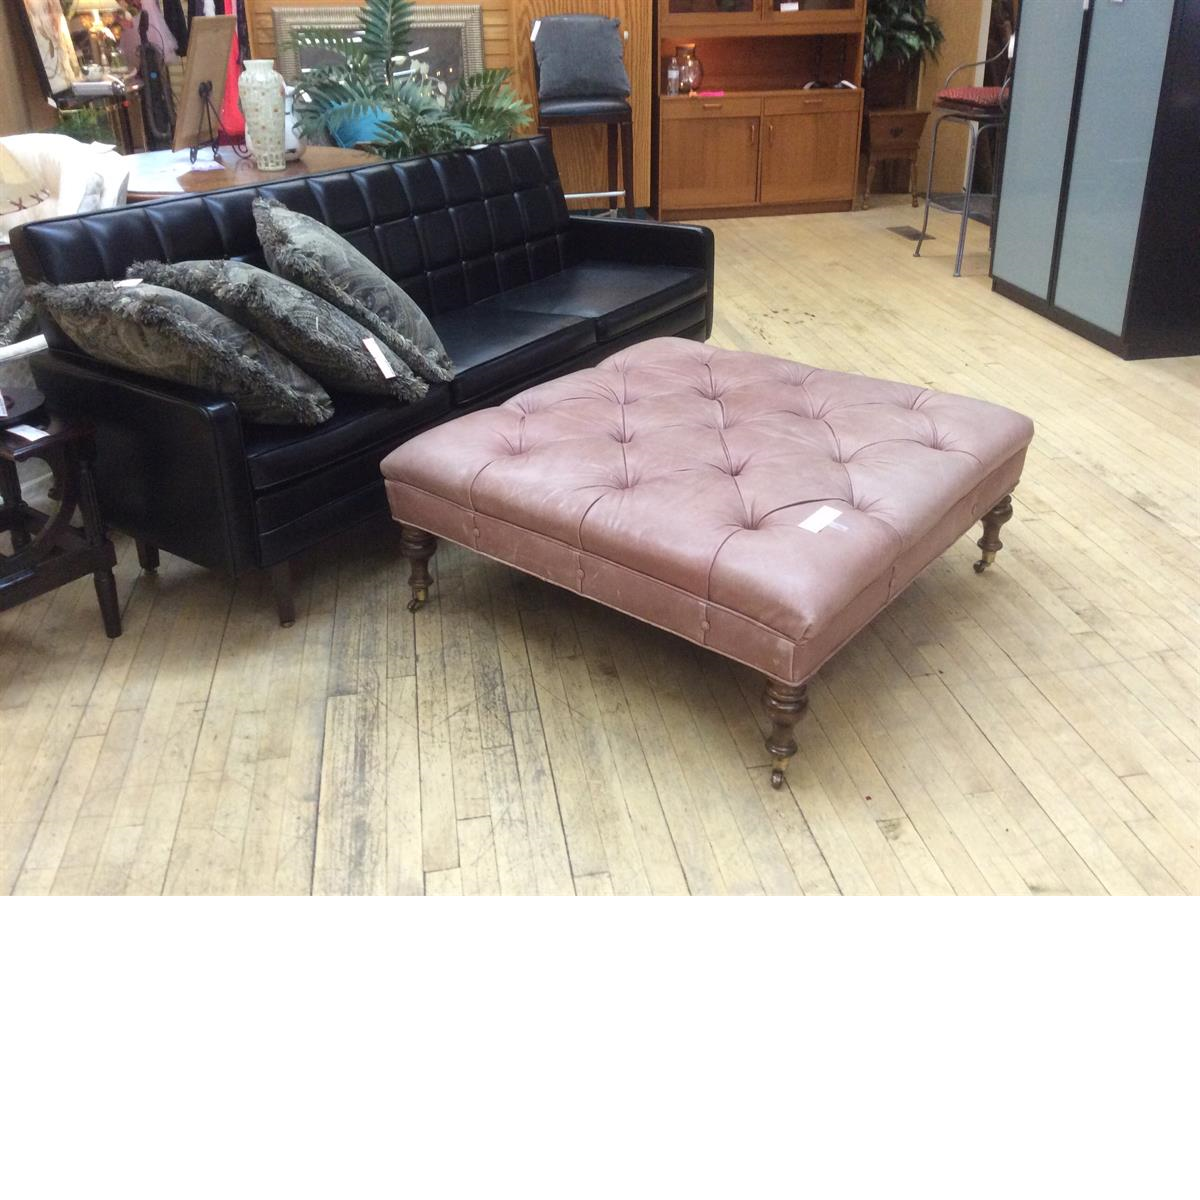 consignment furniture and consignment home decor